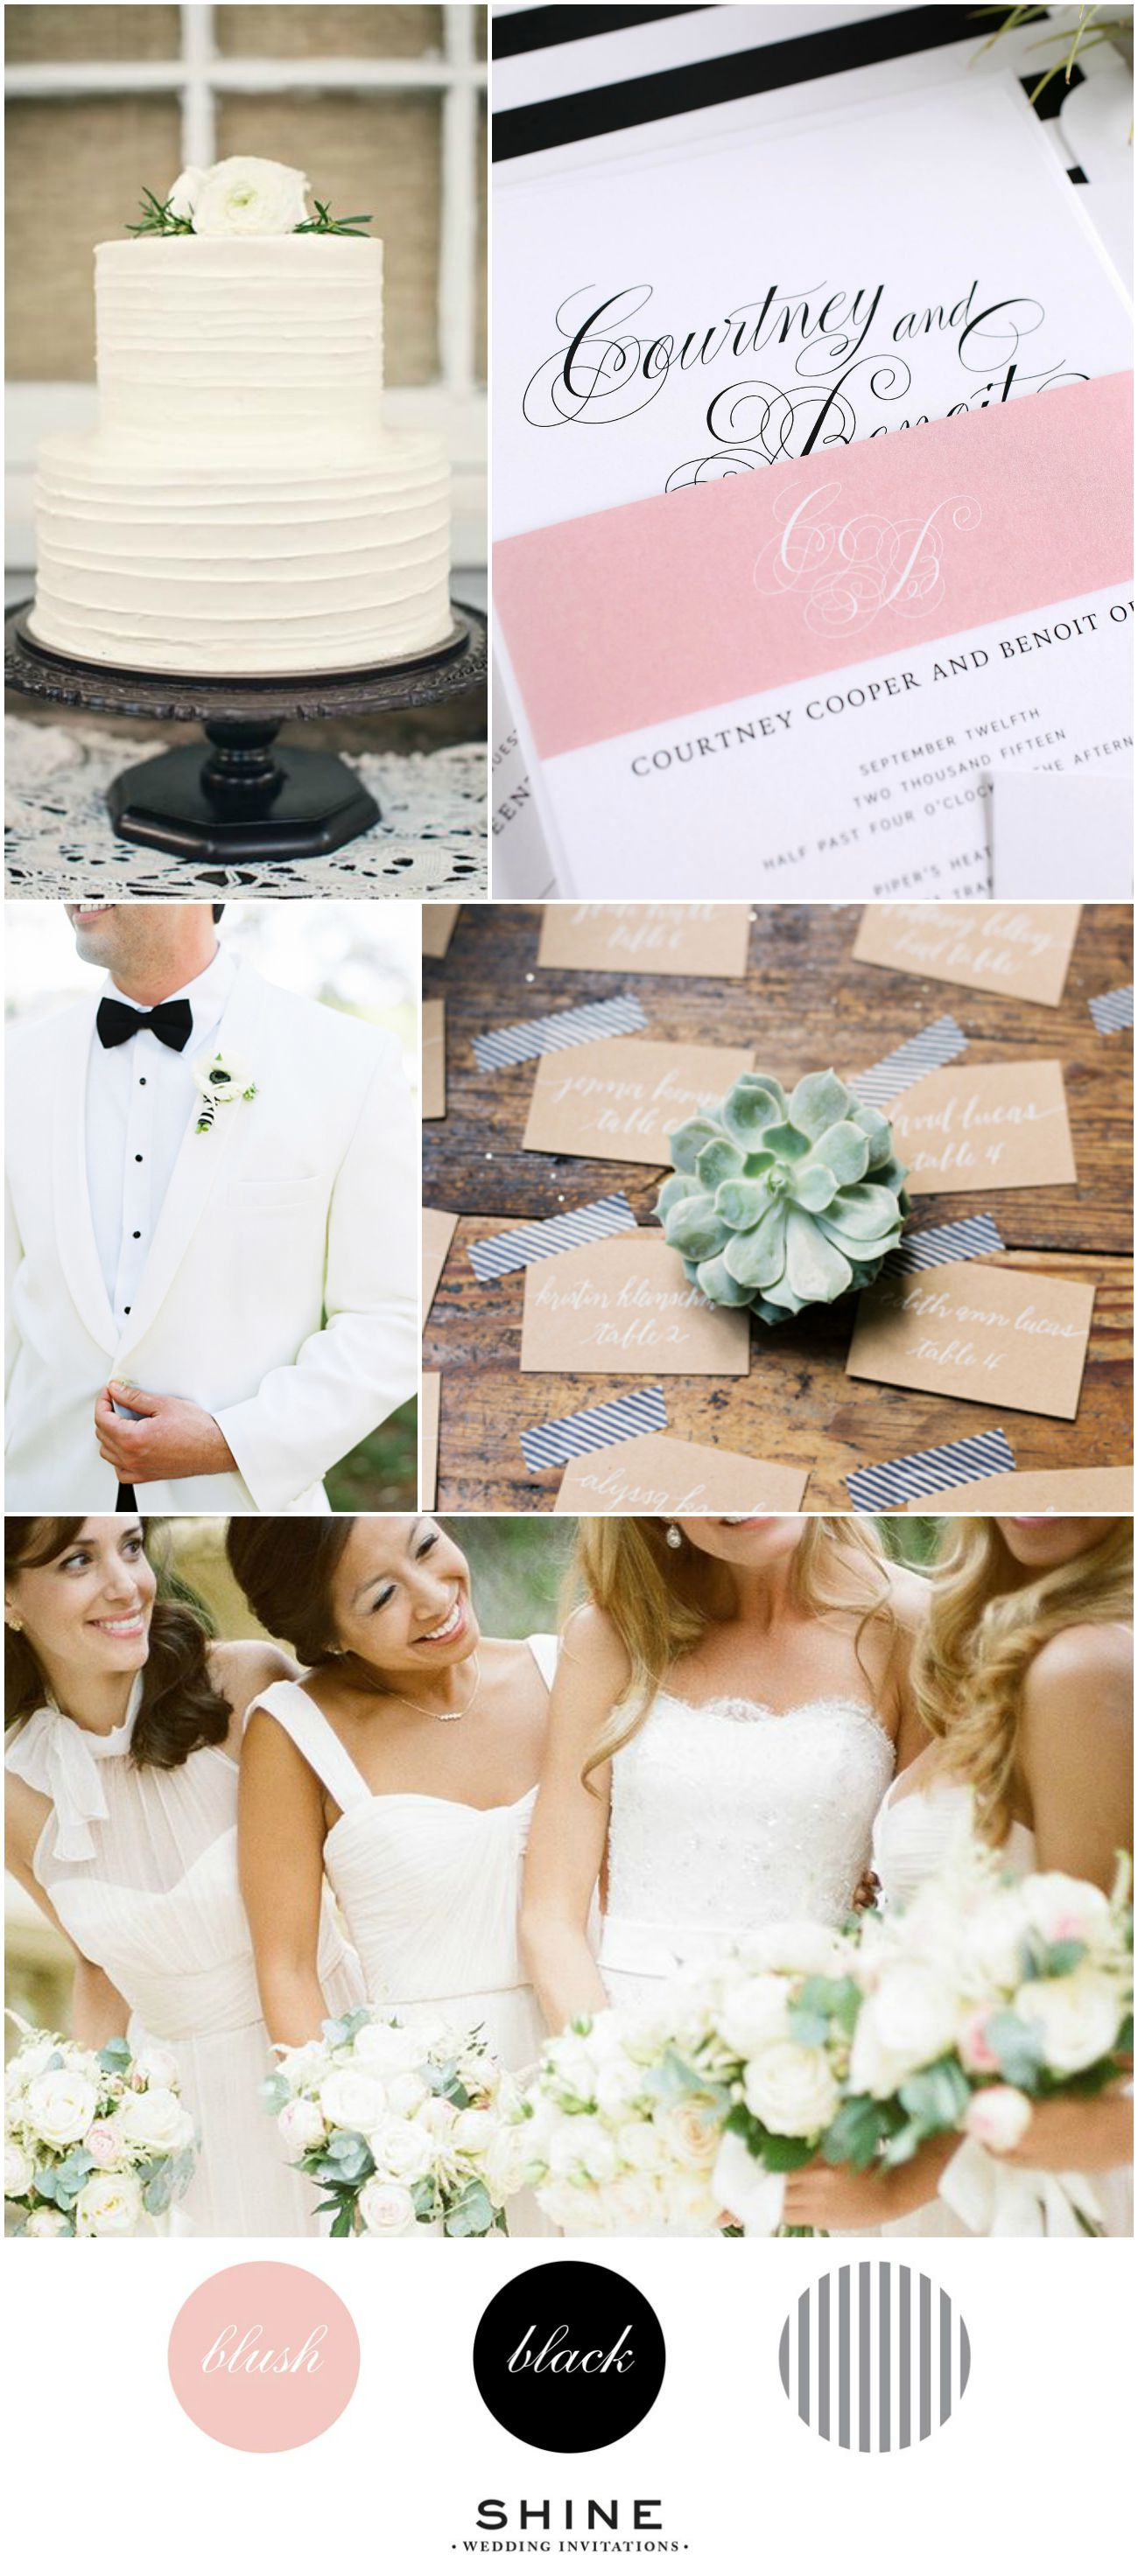 Southern Blush, Black and White Striped Wedding Inspiration